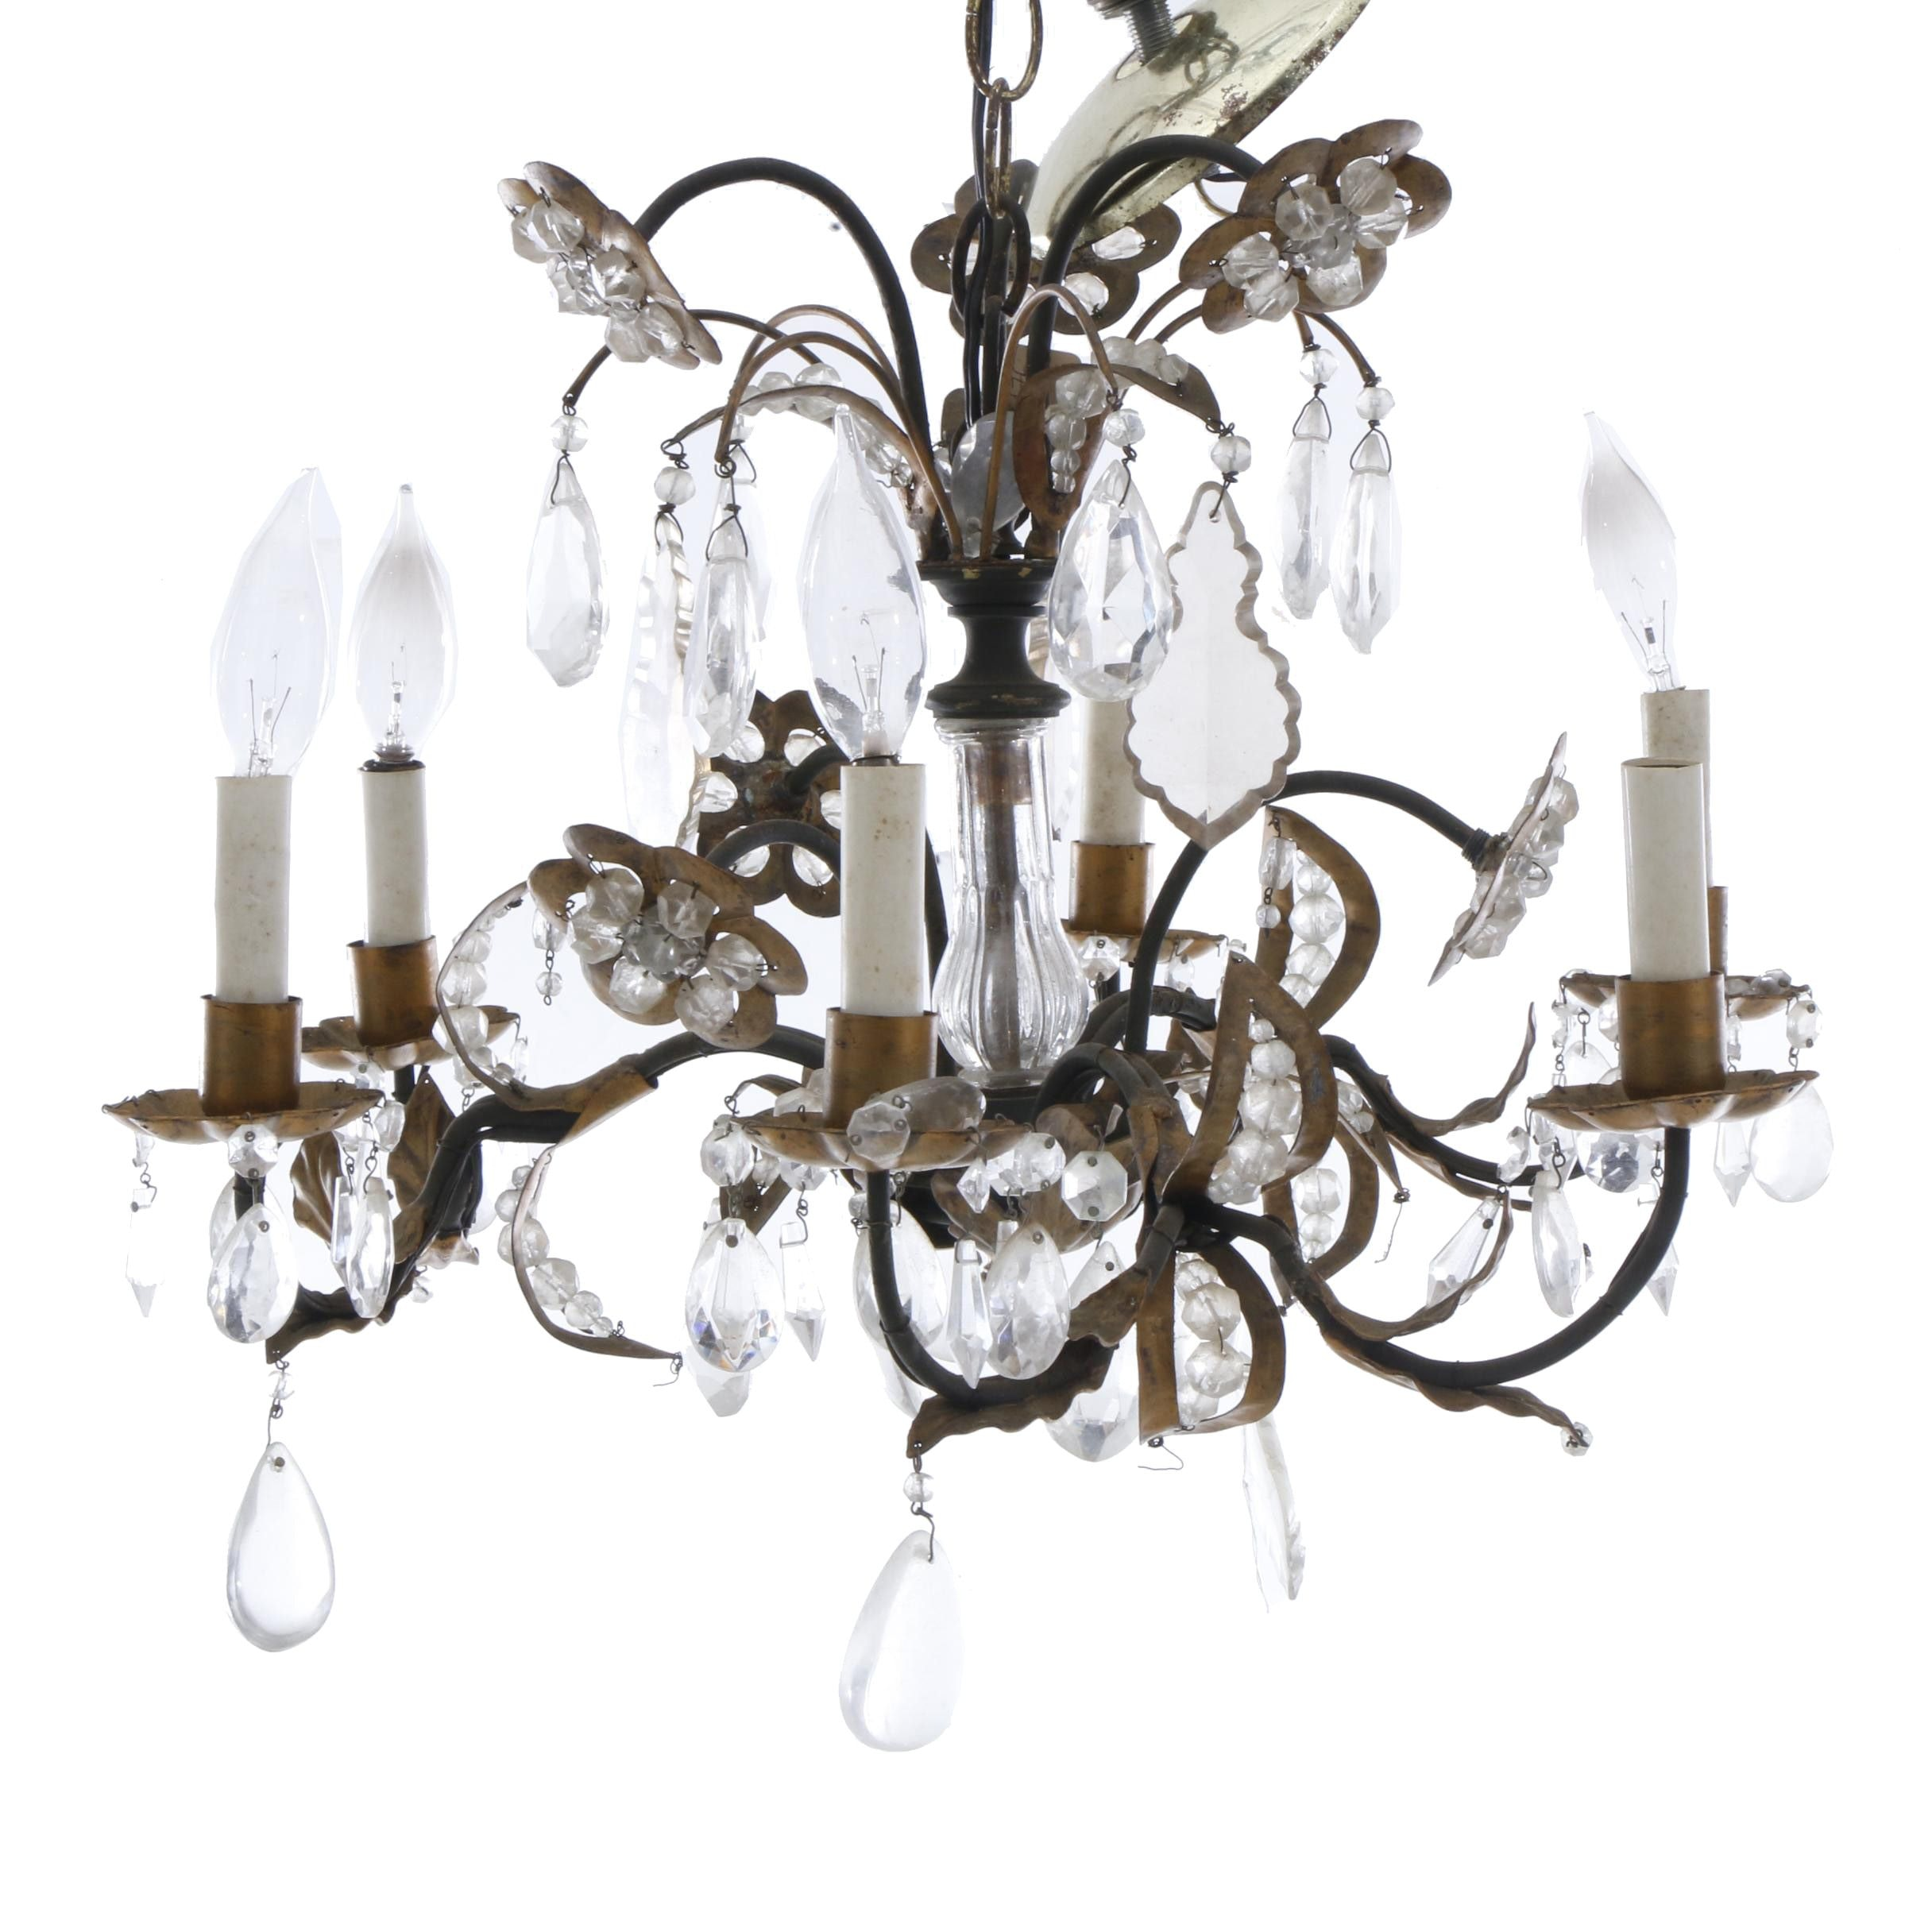 Six-Arm Chandelier with Bead Accented Florets and Drop Prisms